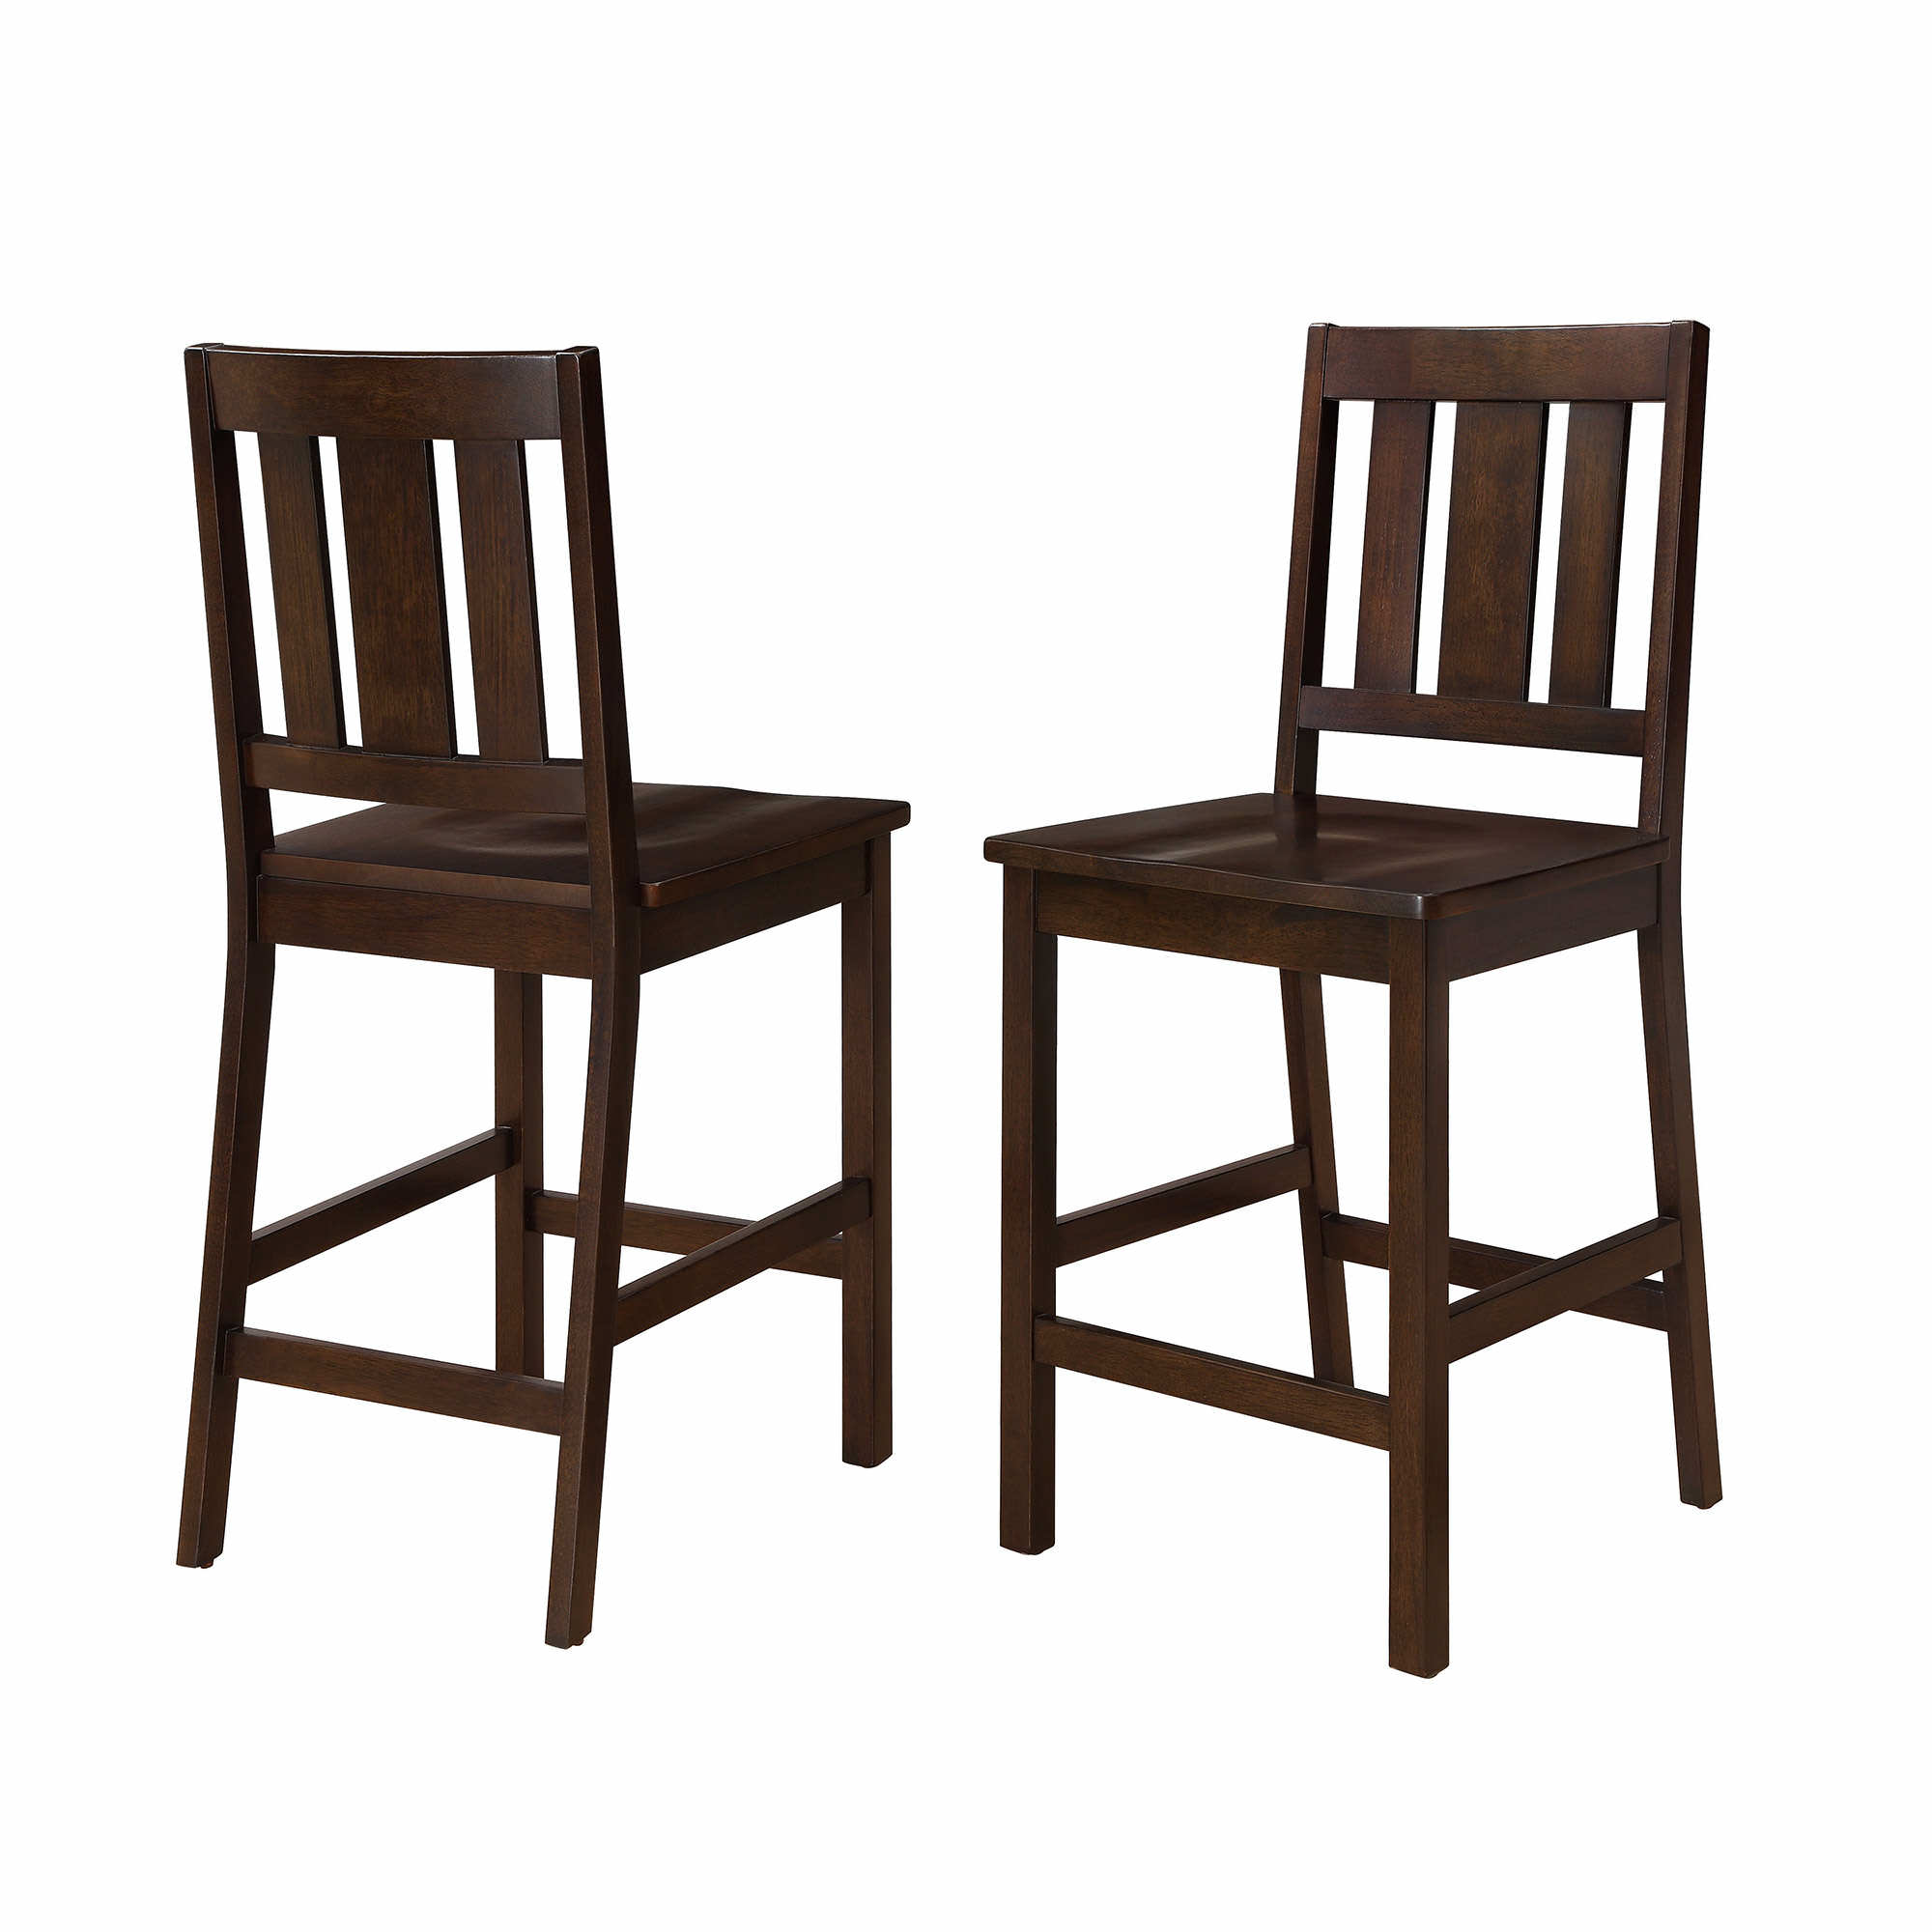 Better Homes and Gardens Bankston Counter Height Stool, Set of 2, Mocha